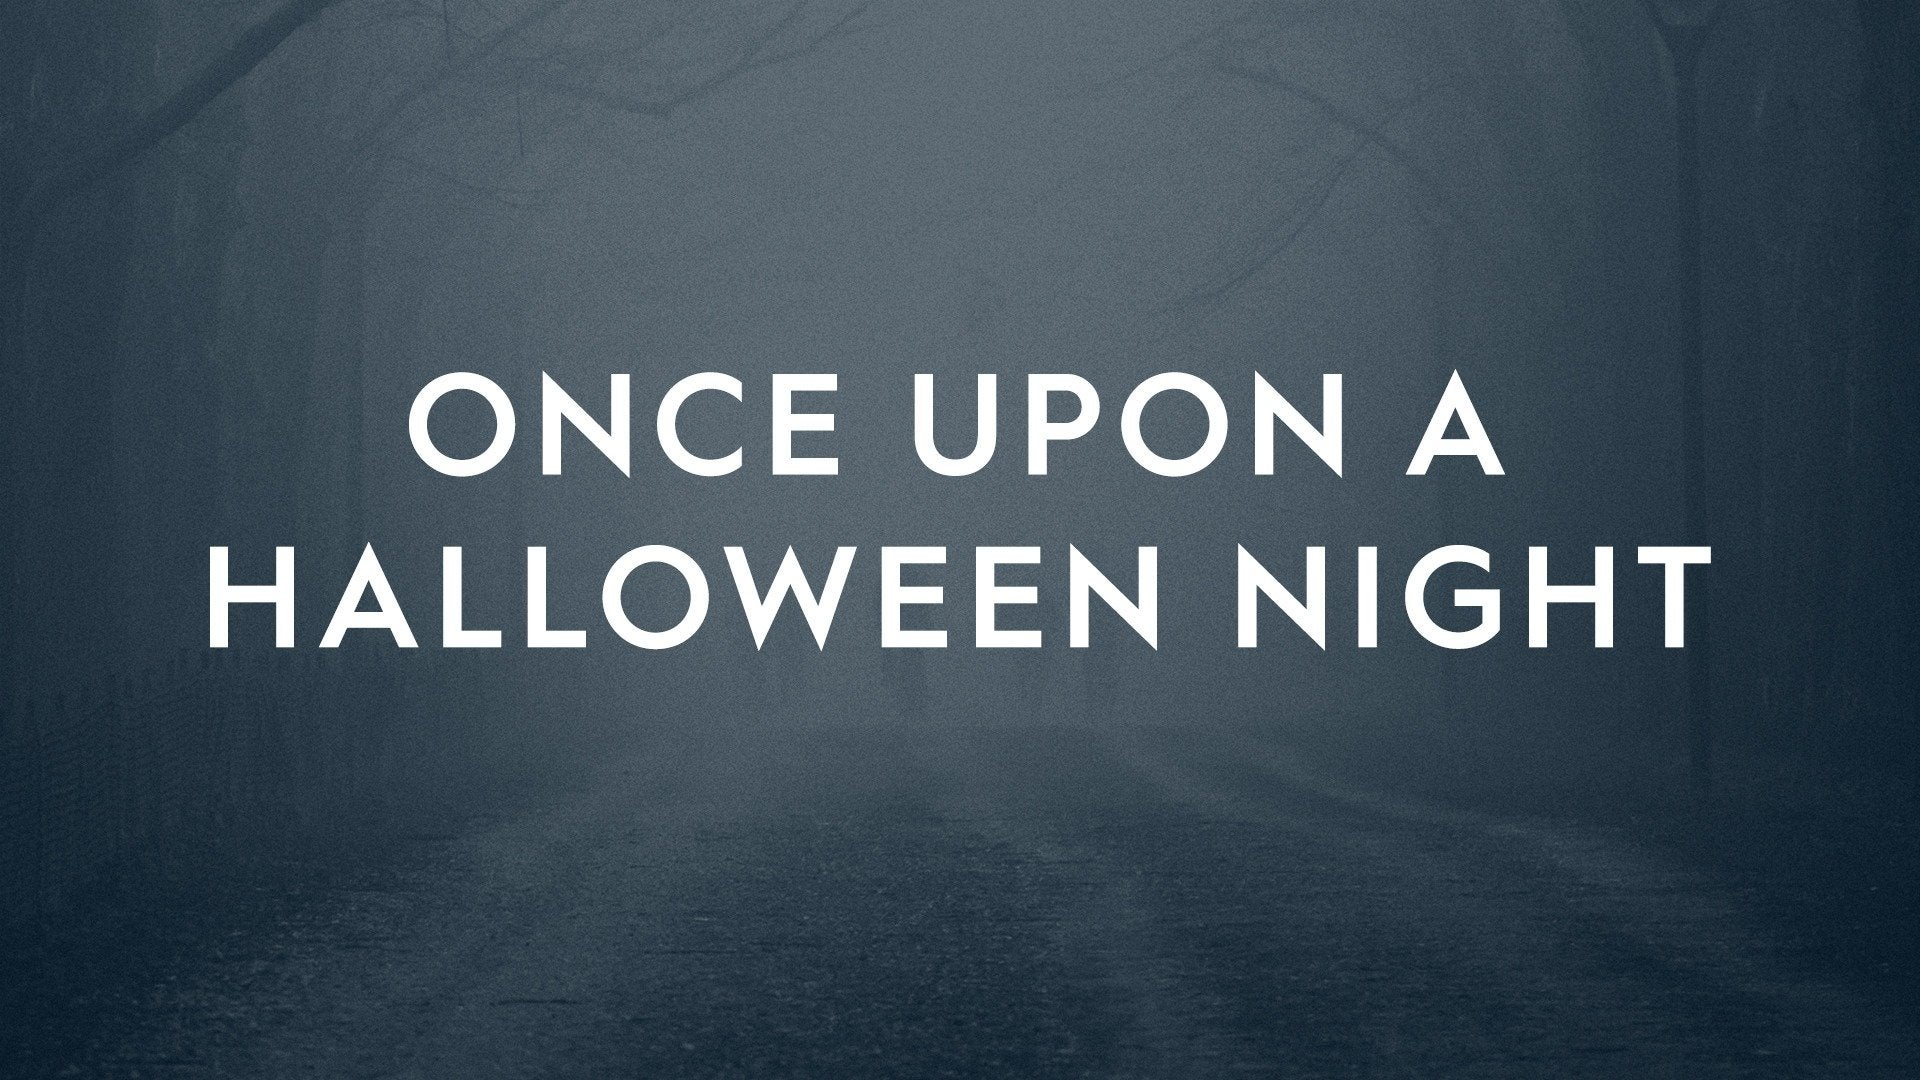 Once Upon a Halloween Night